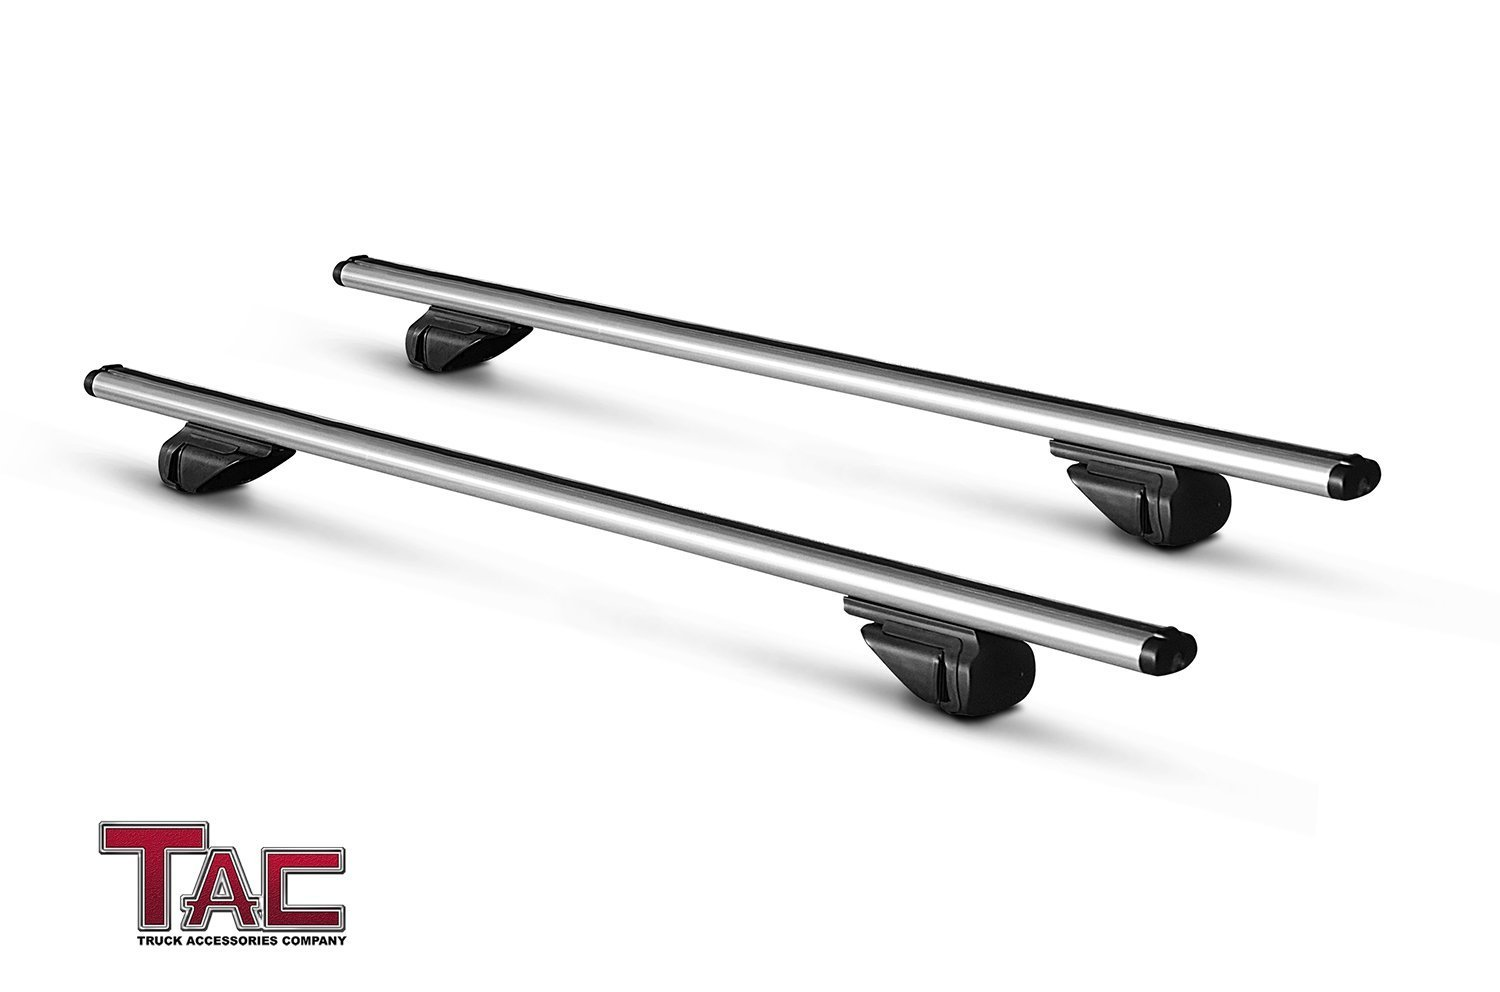 "TAC TRUCK ACCESSORIES COMPANY TAC Roof Rack Cross Bar Aluminum Locking Roof Top Cargo Rack Anti-Theft Cross Bars (48"" Cross Bars, 1 Pair) by TAC TRUCK ACCESSORIES COMPANY"